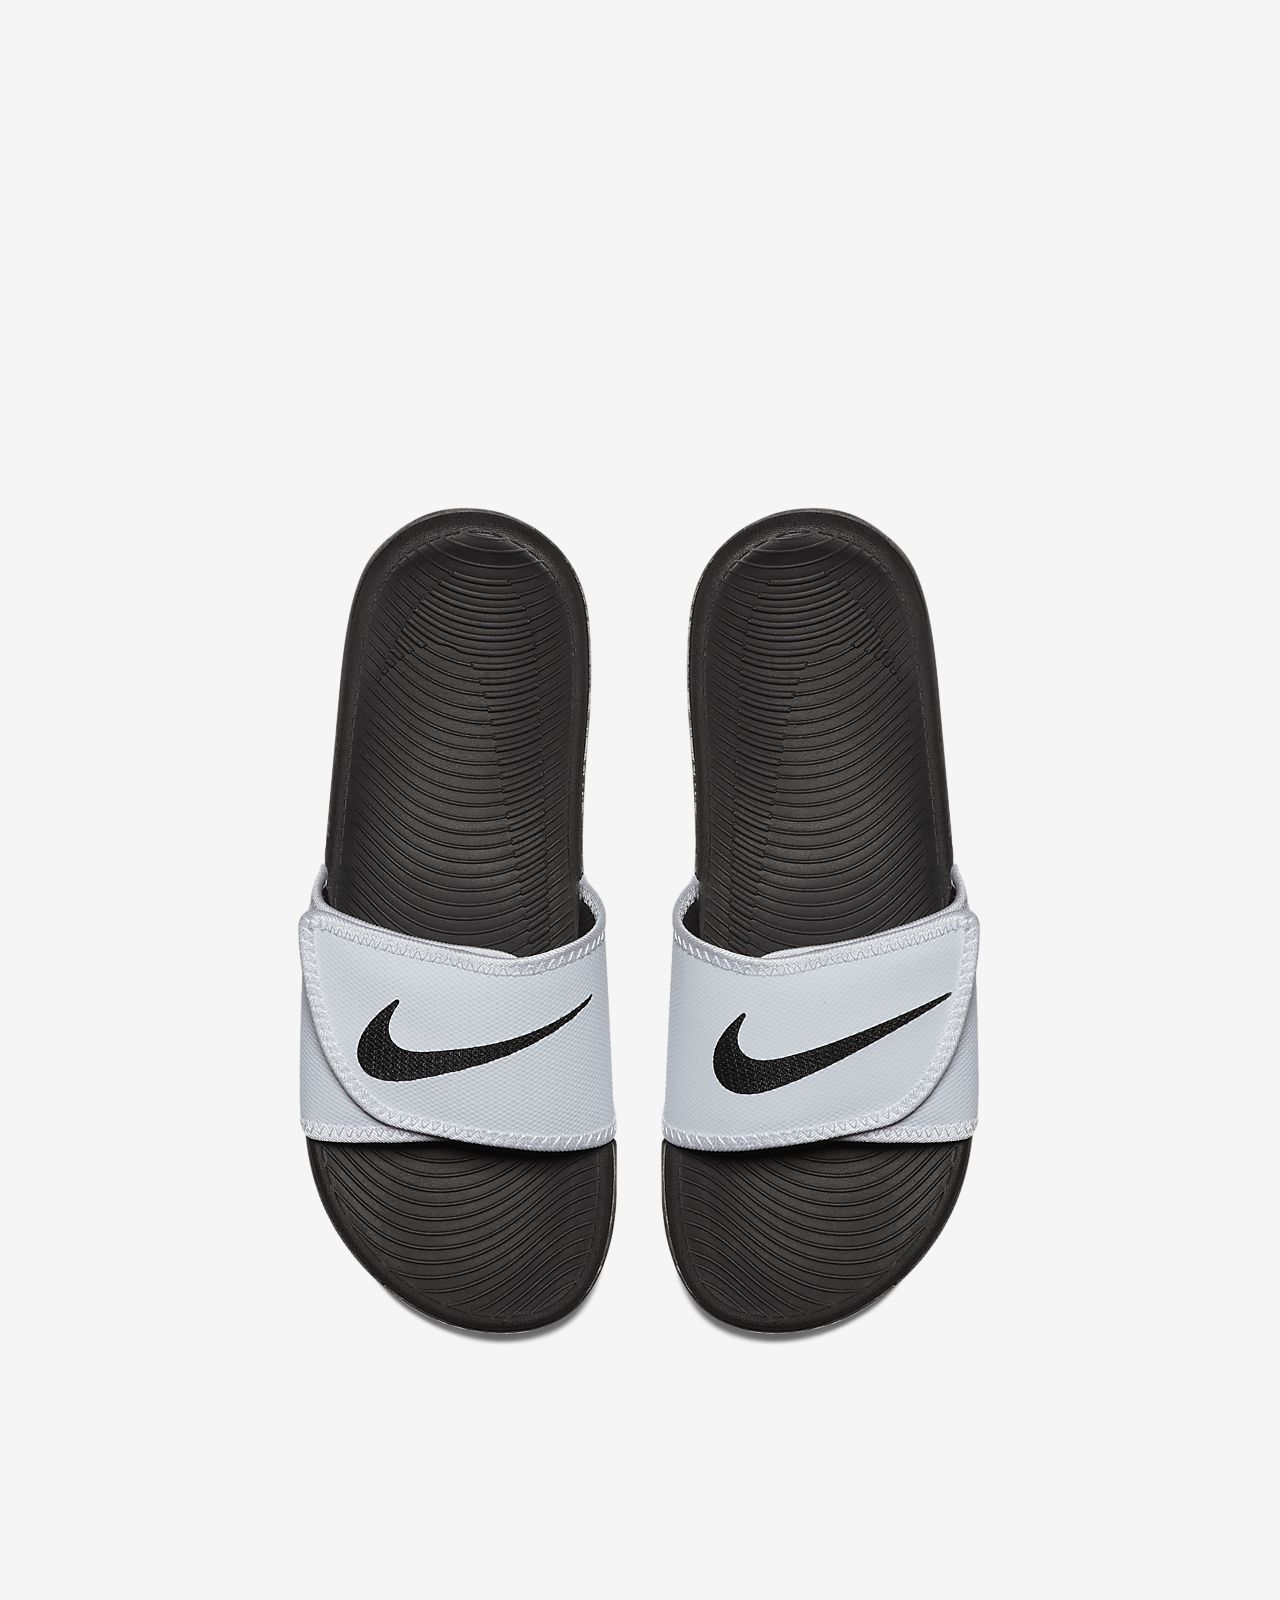 Nike Kawa Men's Adjustable Slide